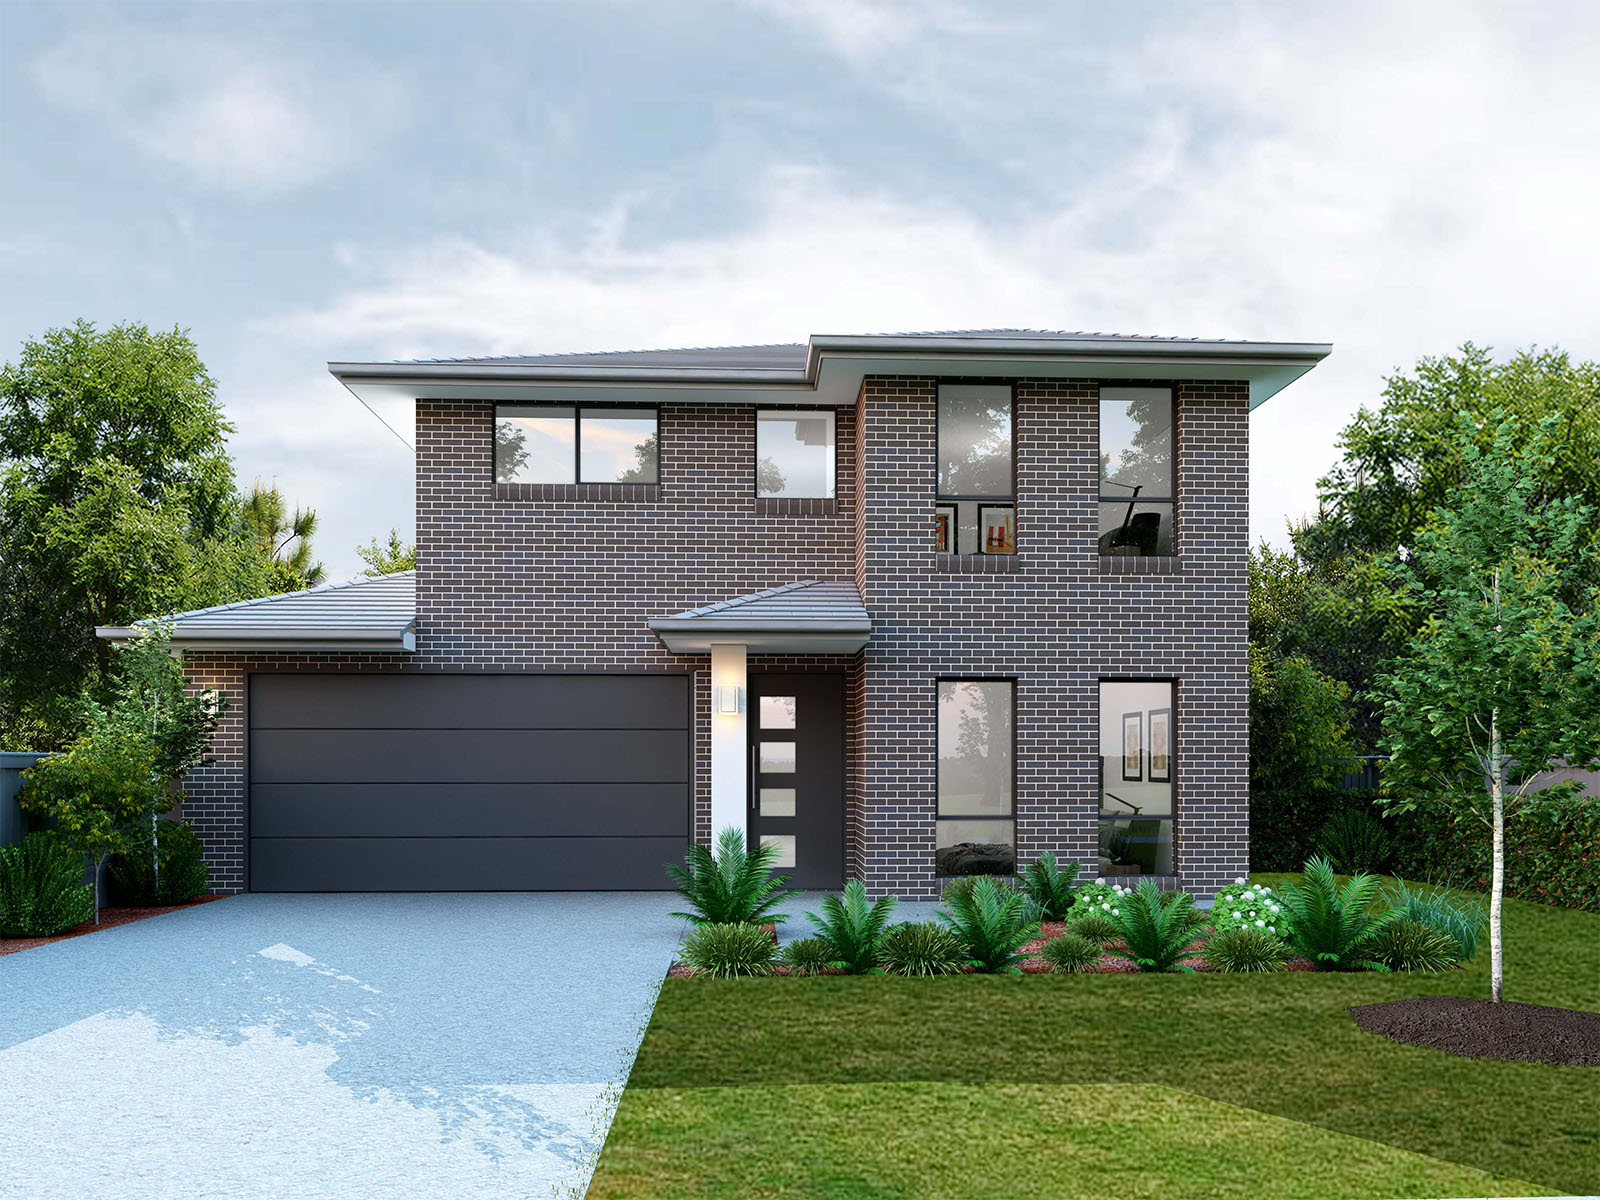 2 storey house design | Sydney | King Homes